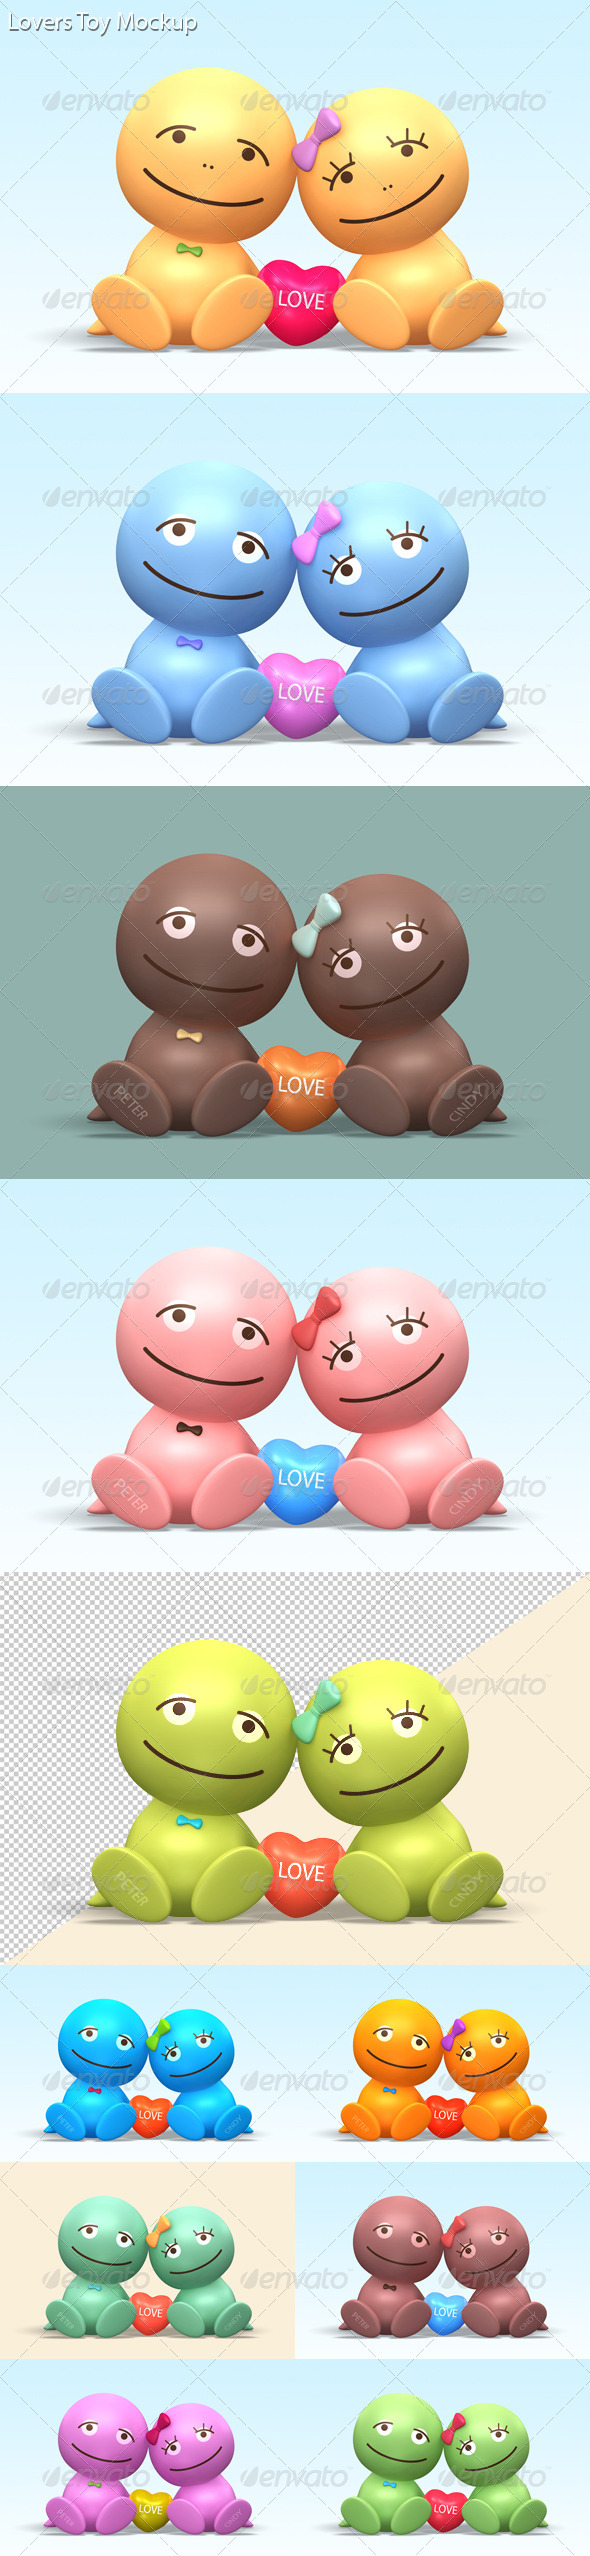 Lovers Toy Mock-up - Objects 3D Renders